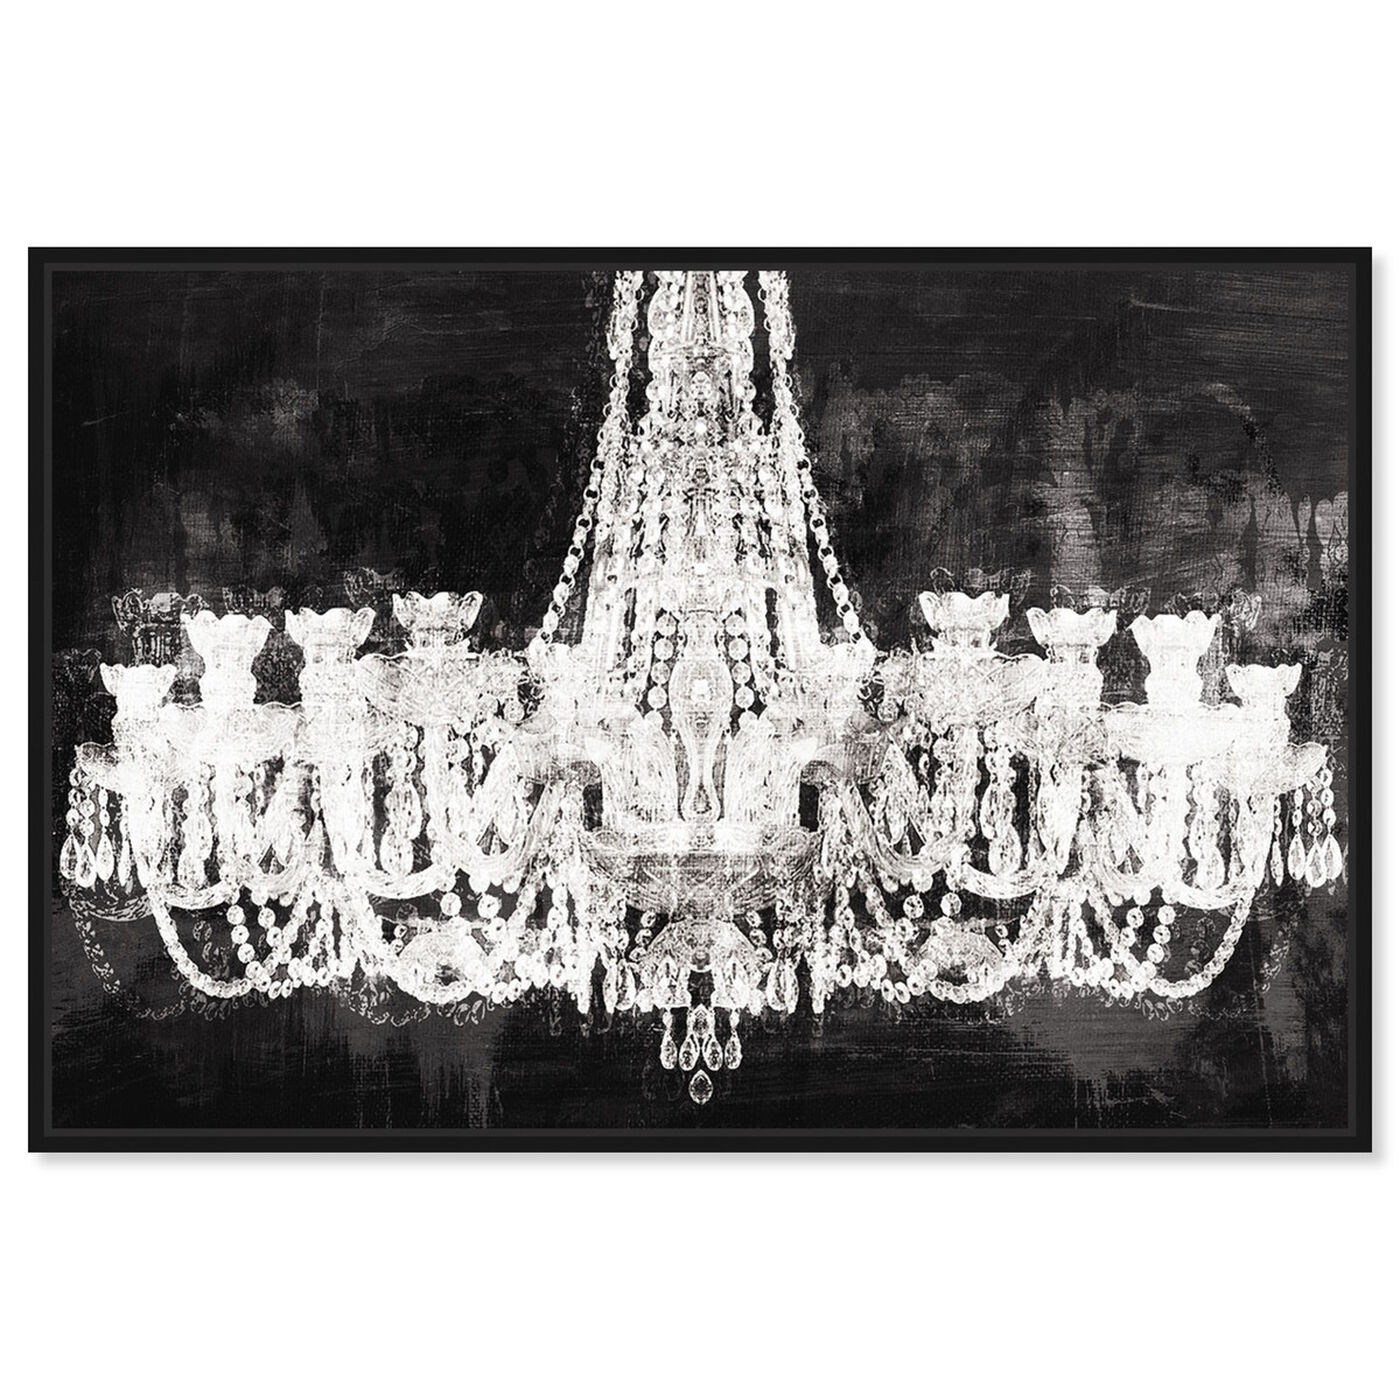 Front view of Decadent Soiree featuring fashion and glam and chandeliers art.